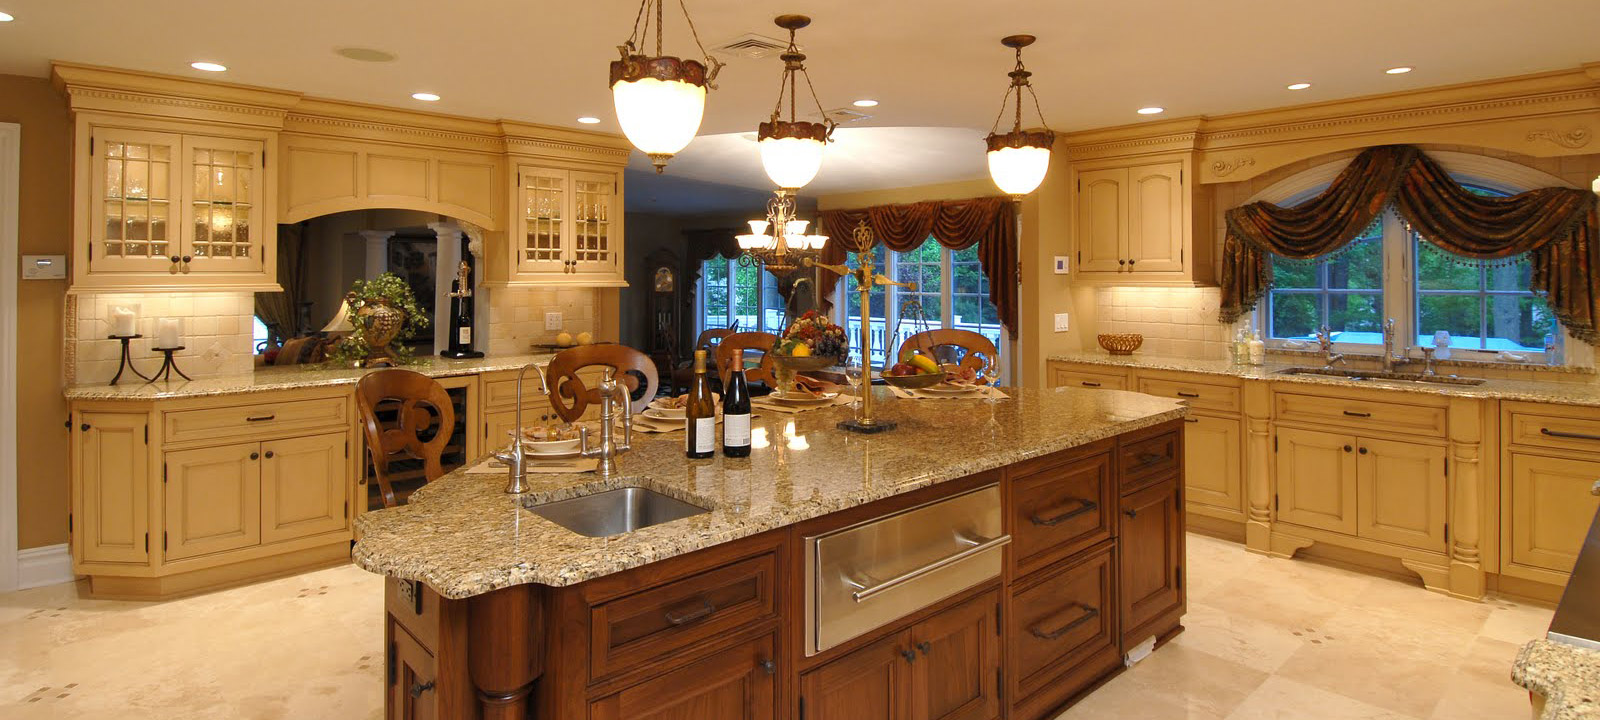 Outlets In Nj >> From Design to Complete Installation - Royal Kitchens & Baths